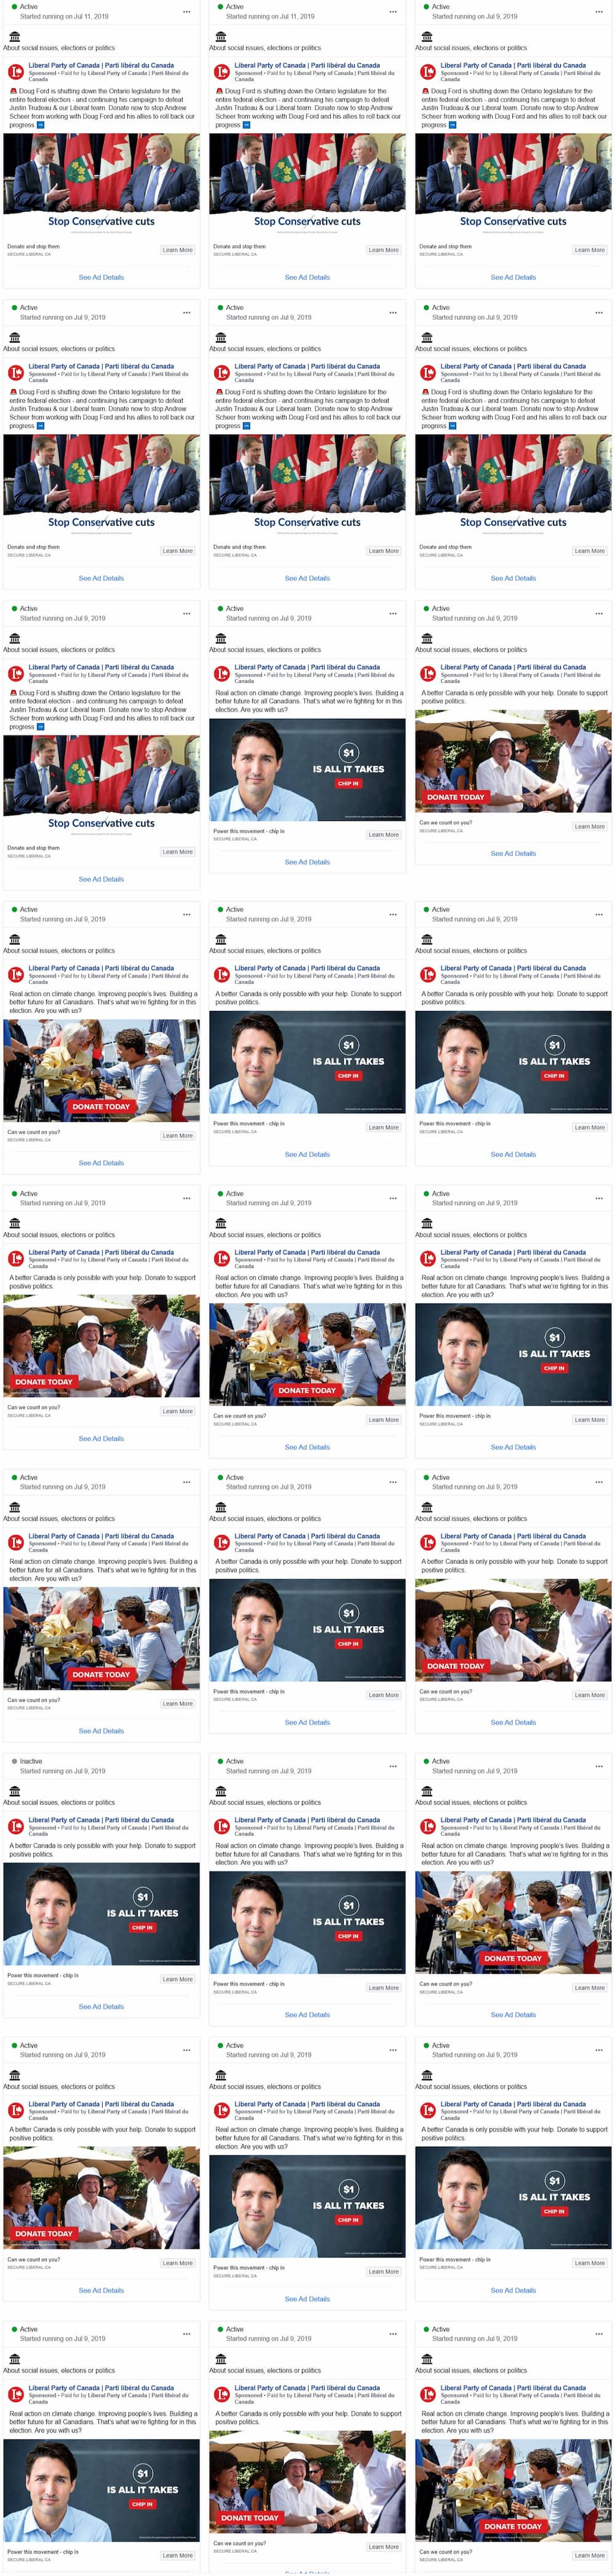 Liberal Party Facebook Ads